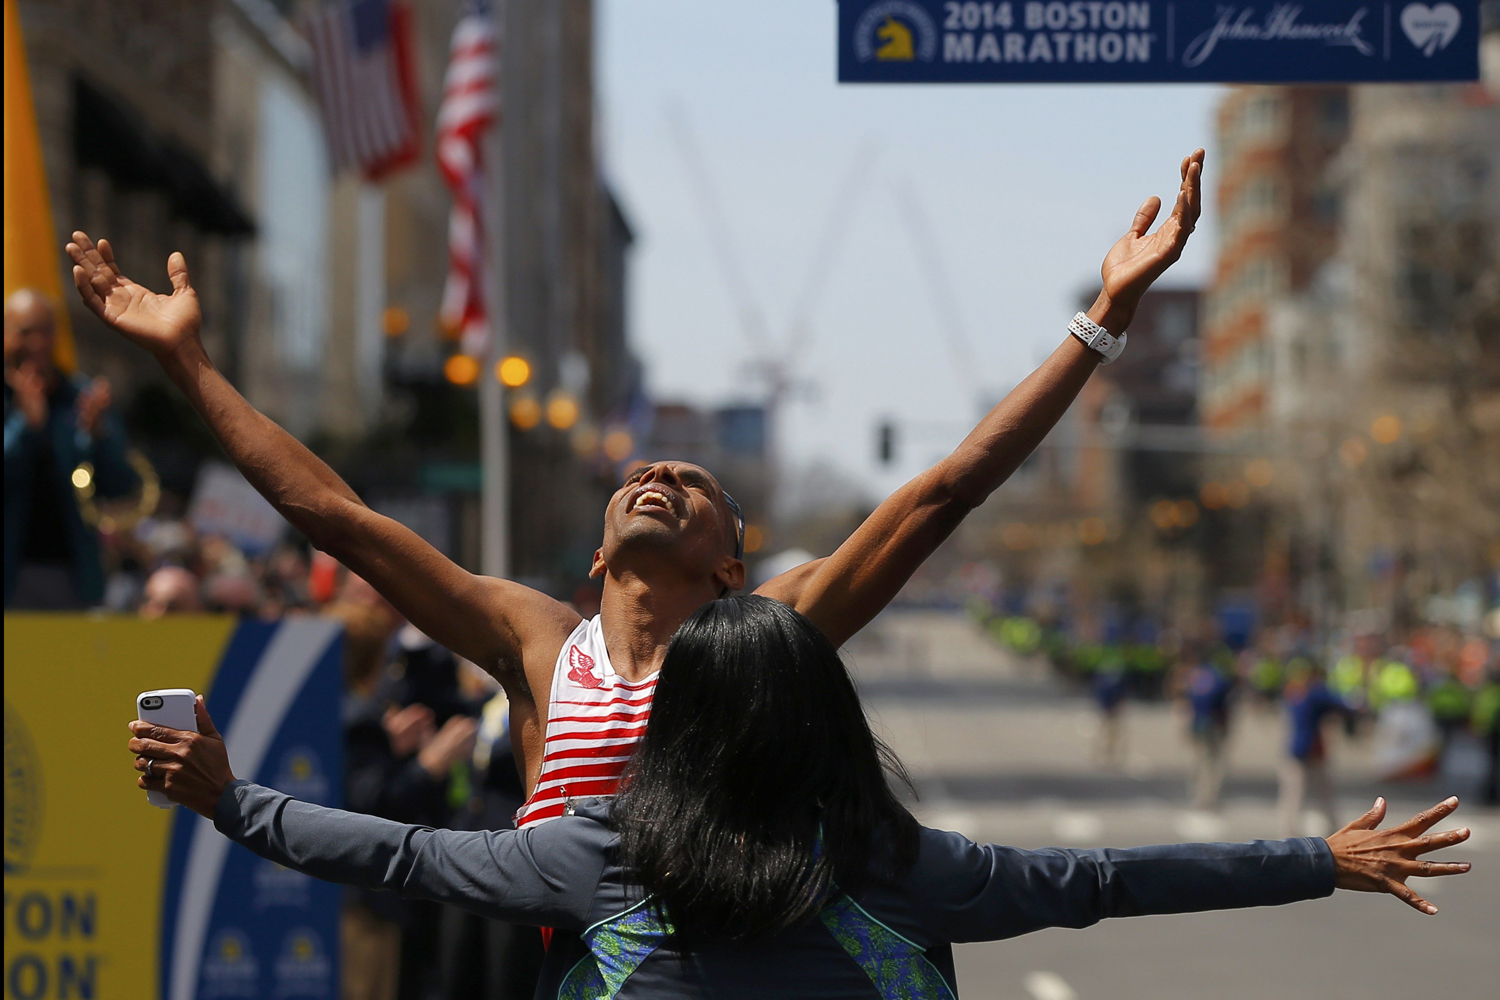 Meb Keflezighi of the U.S. celebrates with his wife Yordanos Asgedom after winning the men's division of the 118th running of the Boston Marathon on April 21, 2014.